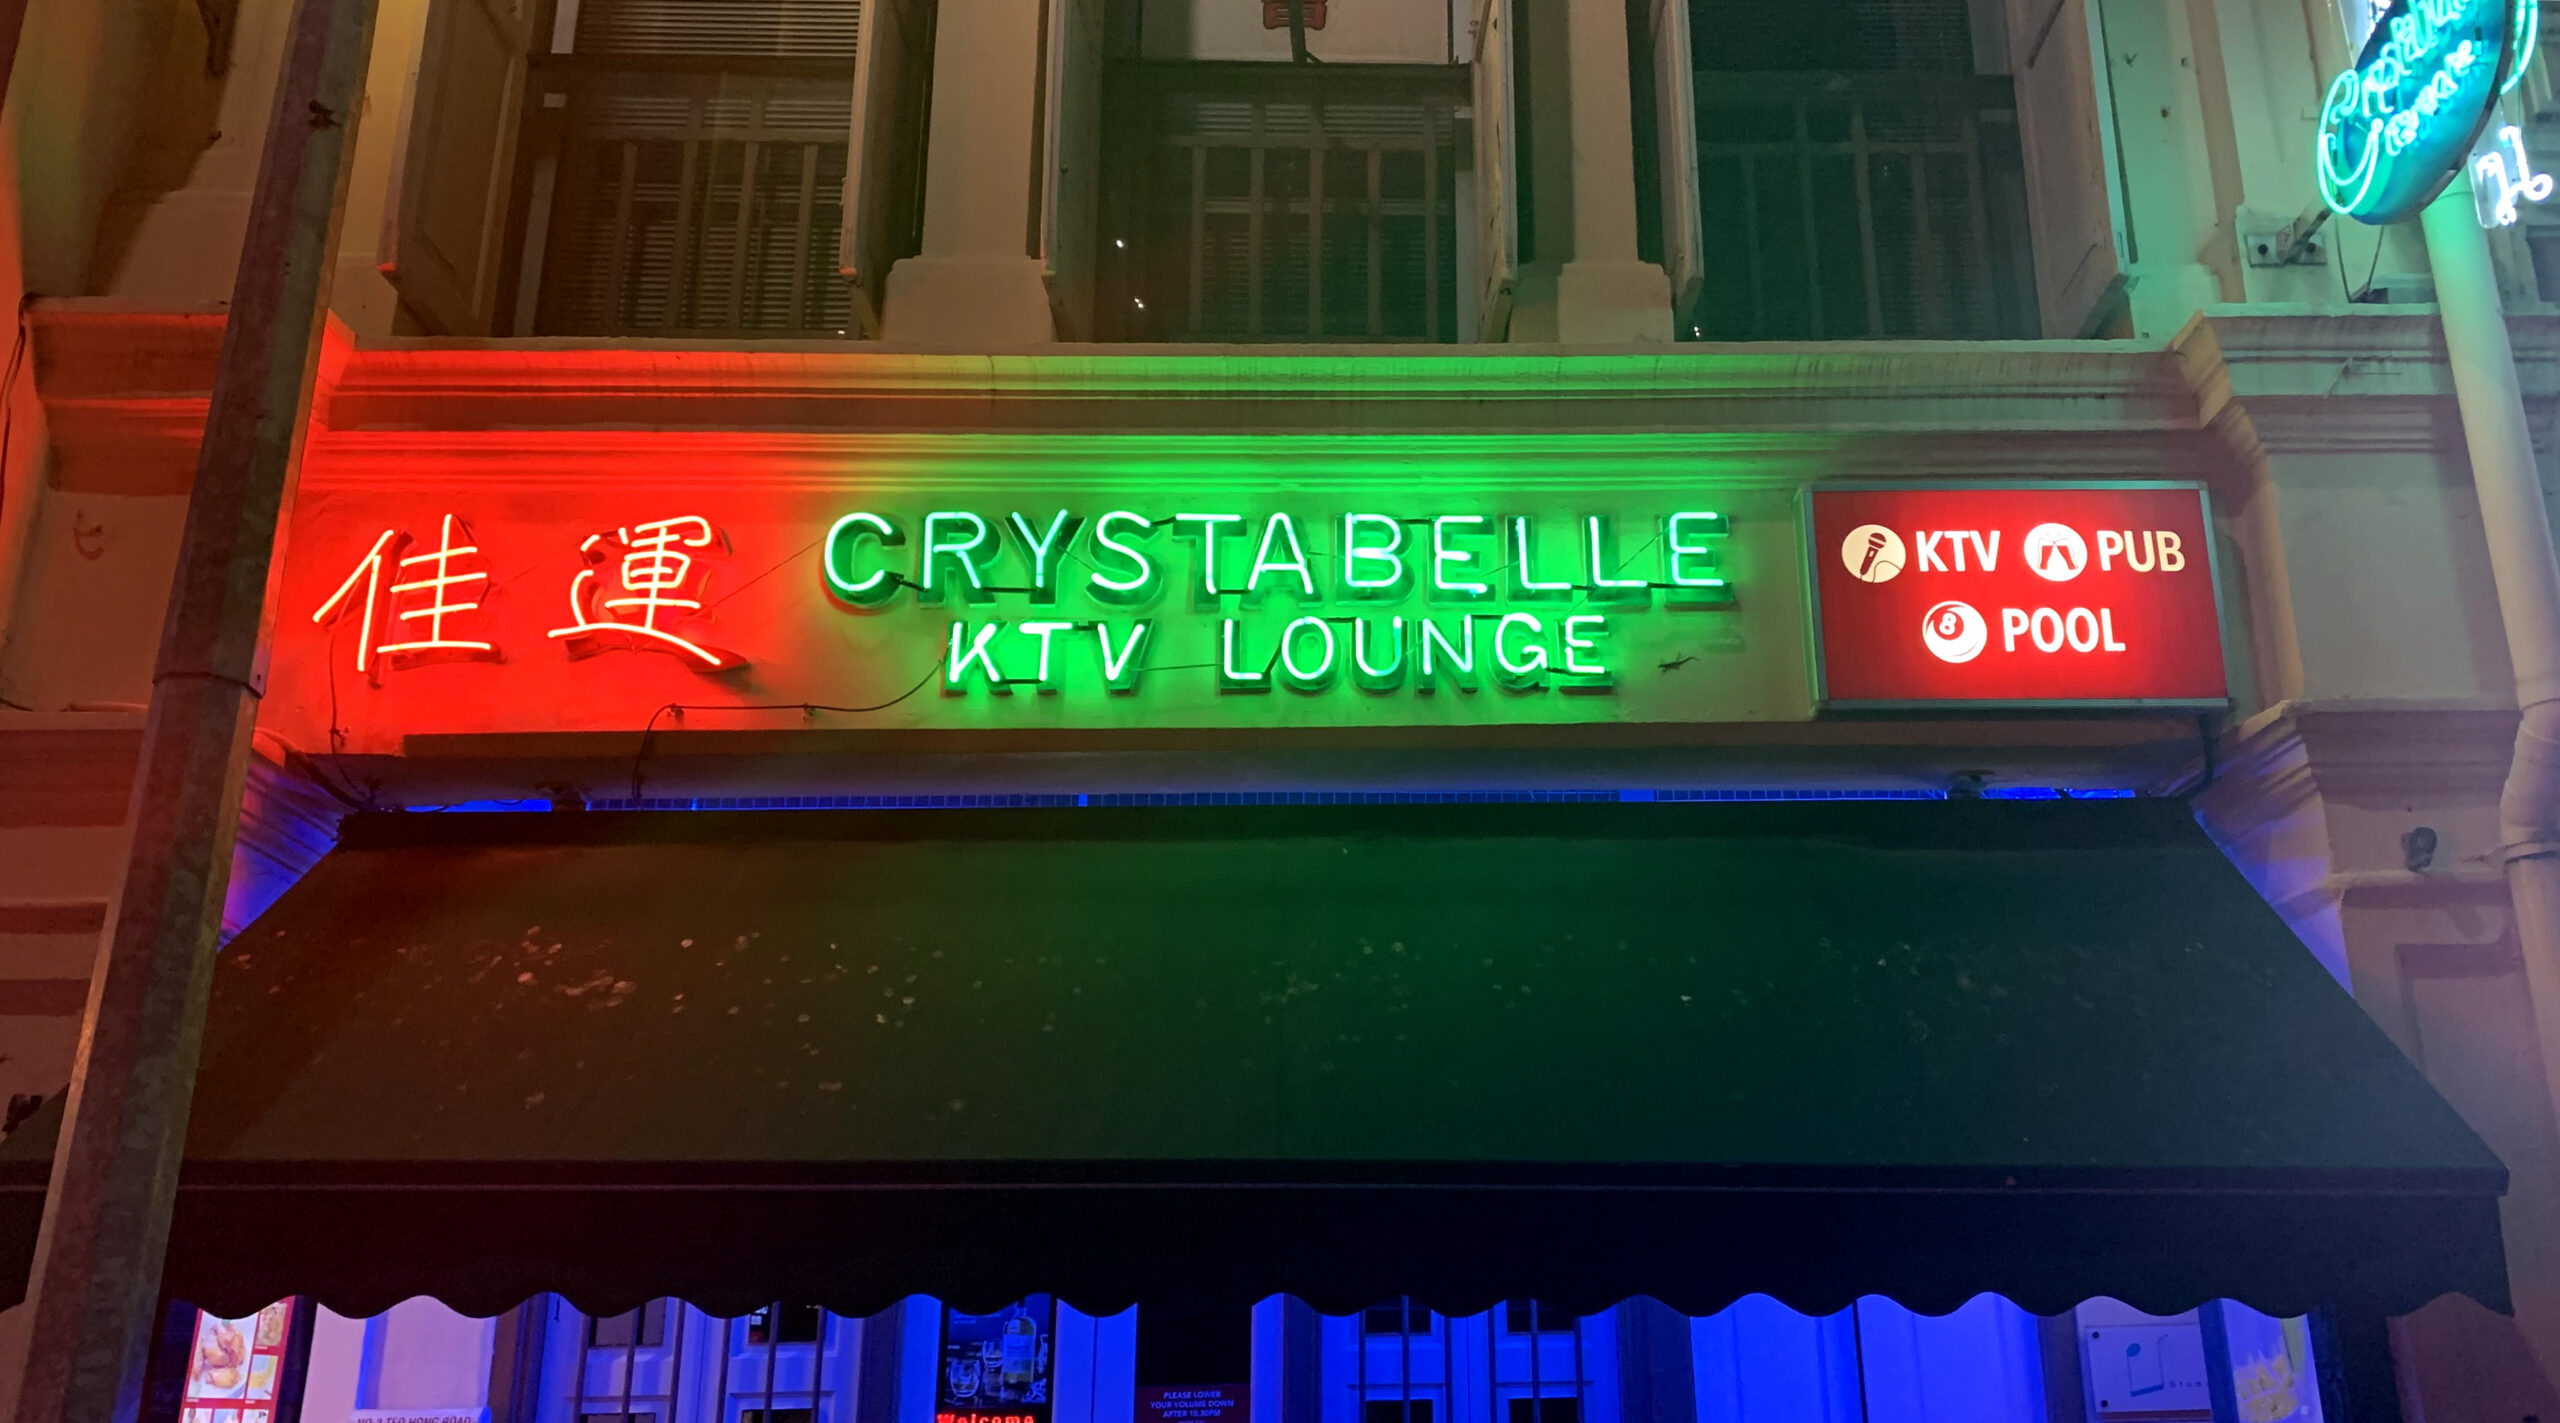 Crystabelle KTV Lounge Lunar New Year Promotion